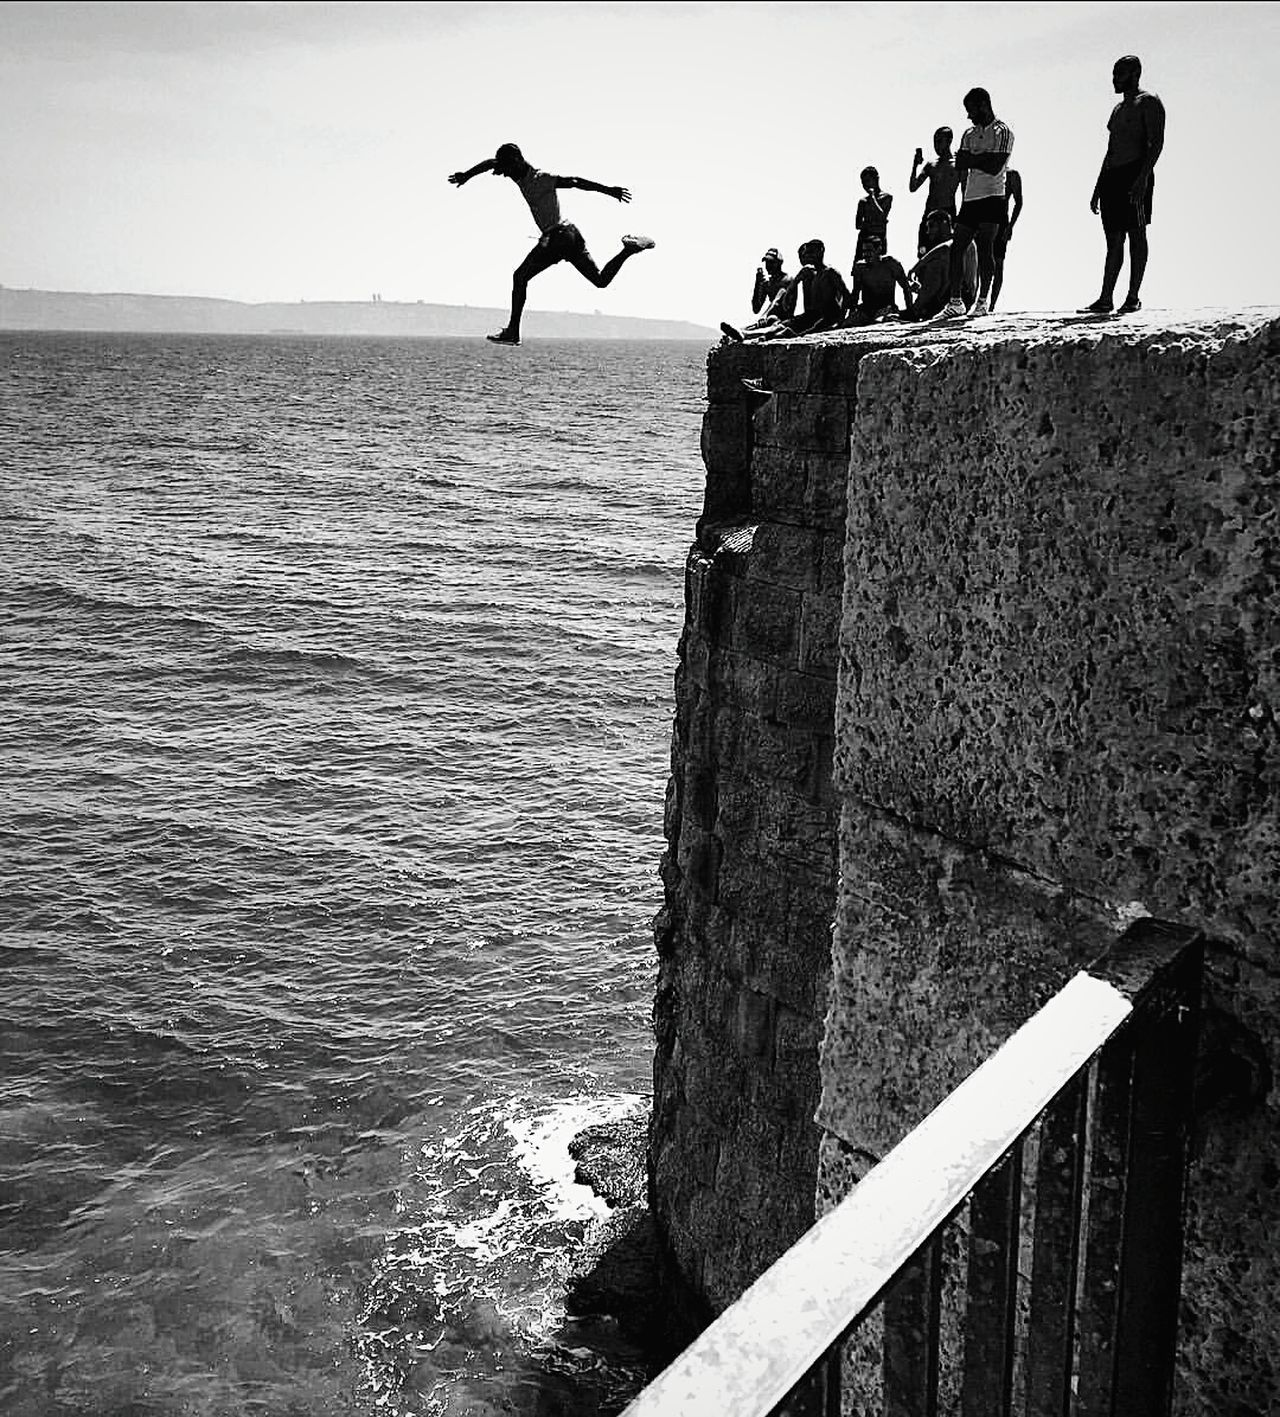 CliffJumping EyeEm Best Shots EyeEm Best Shots - Black + White Israel Travel Travel Photography Cliffjump Horizon Blackandwhite Monochrome Silhouette Sea People People Photography EyeEm Bnw